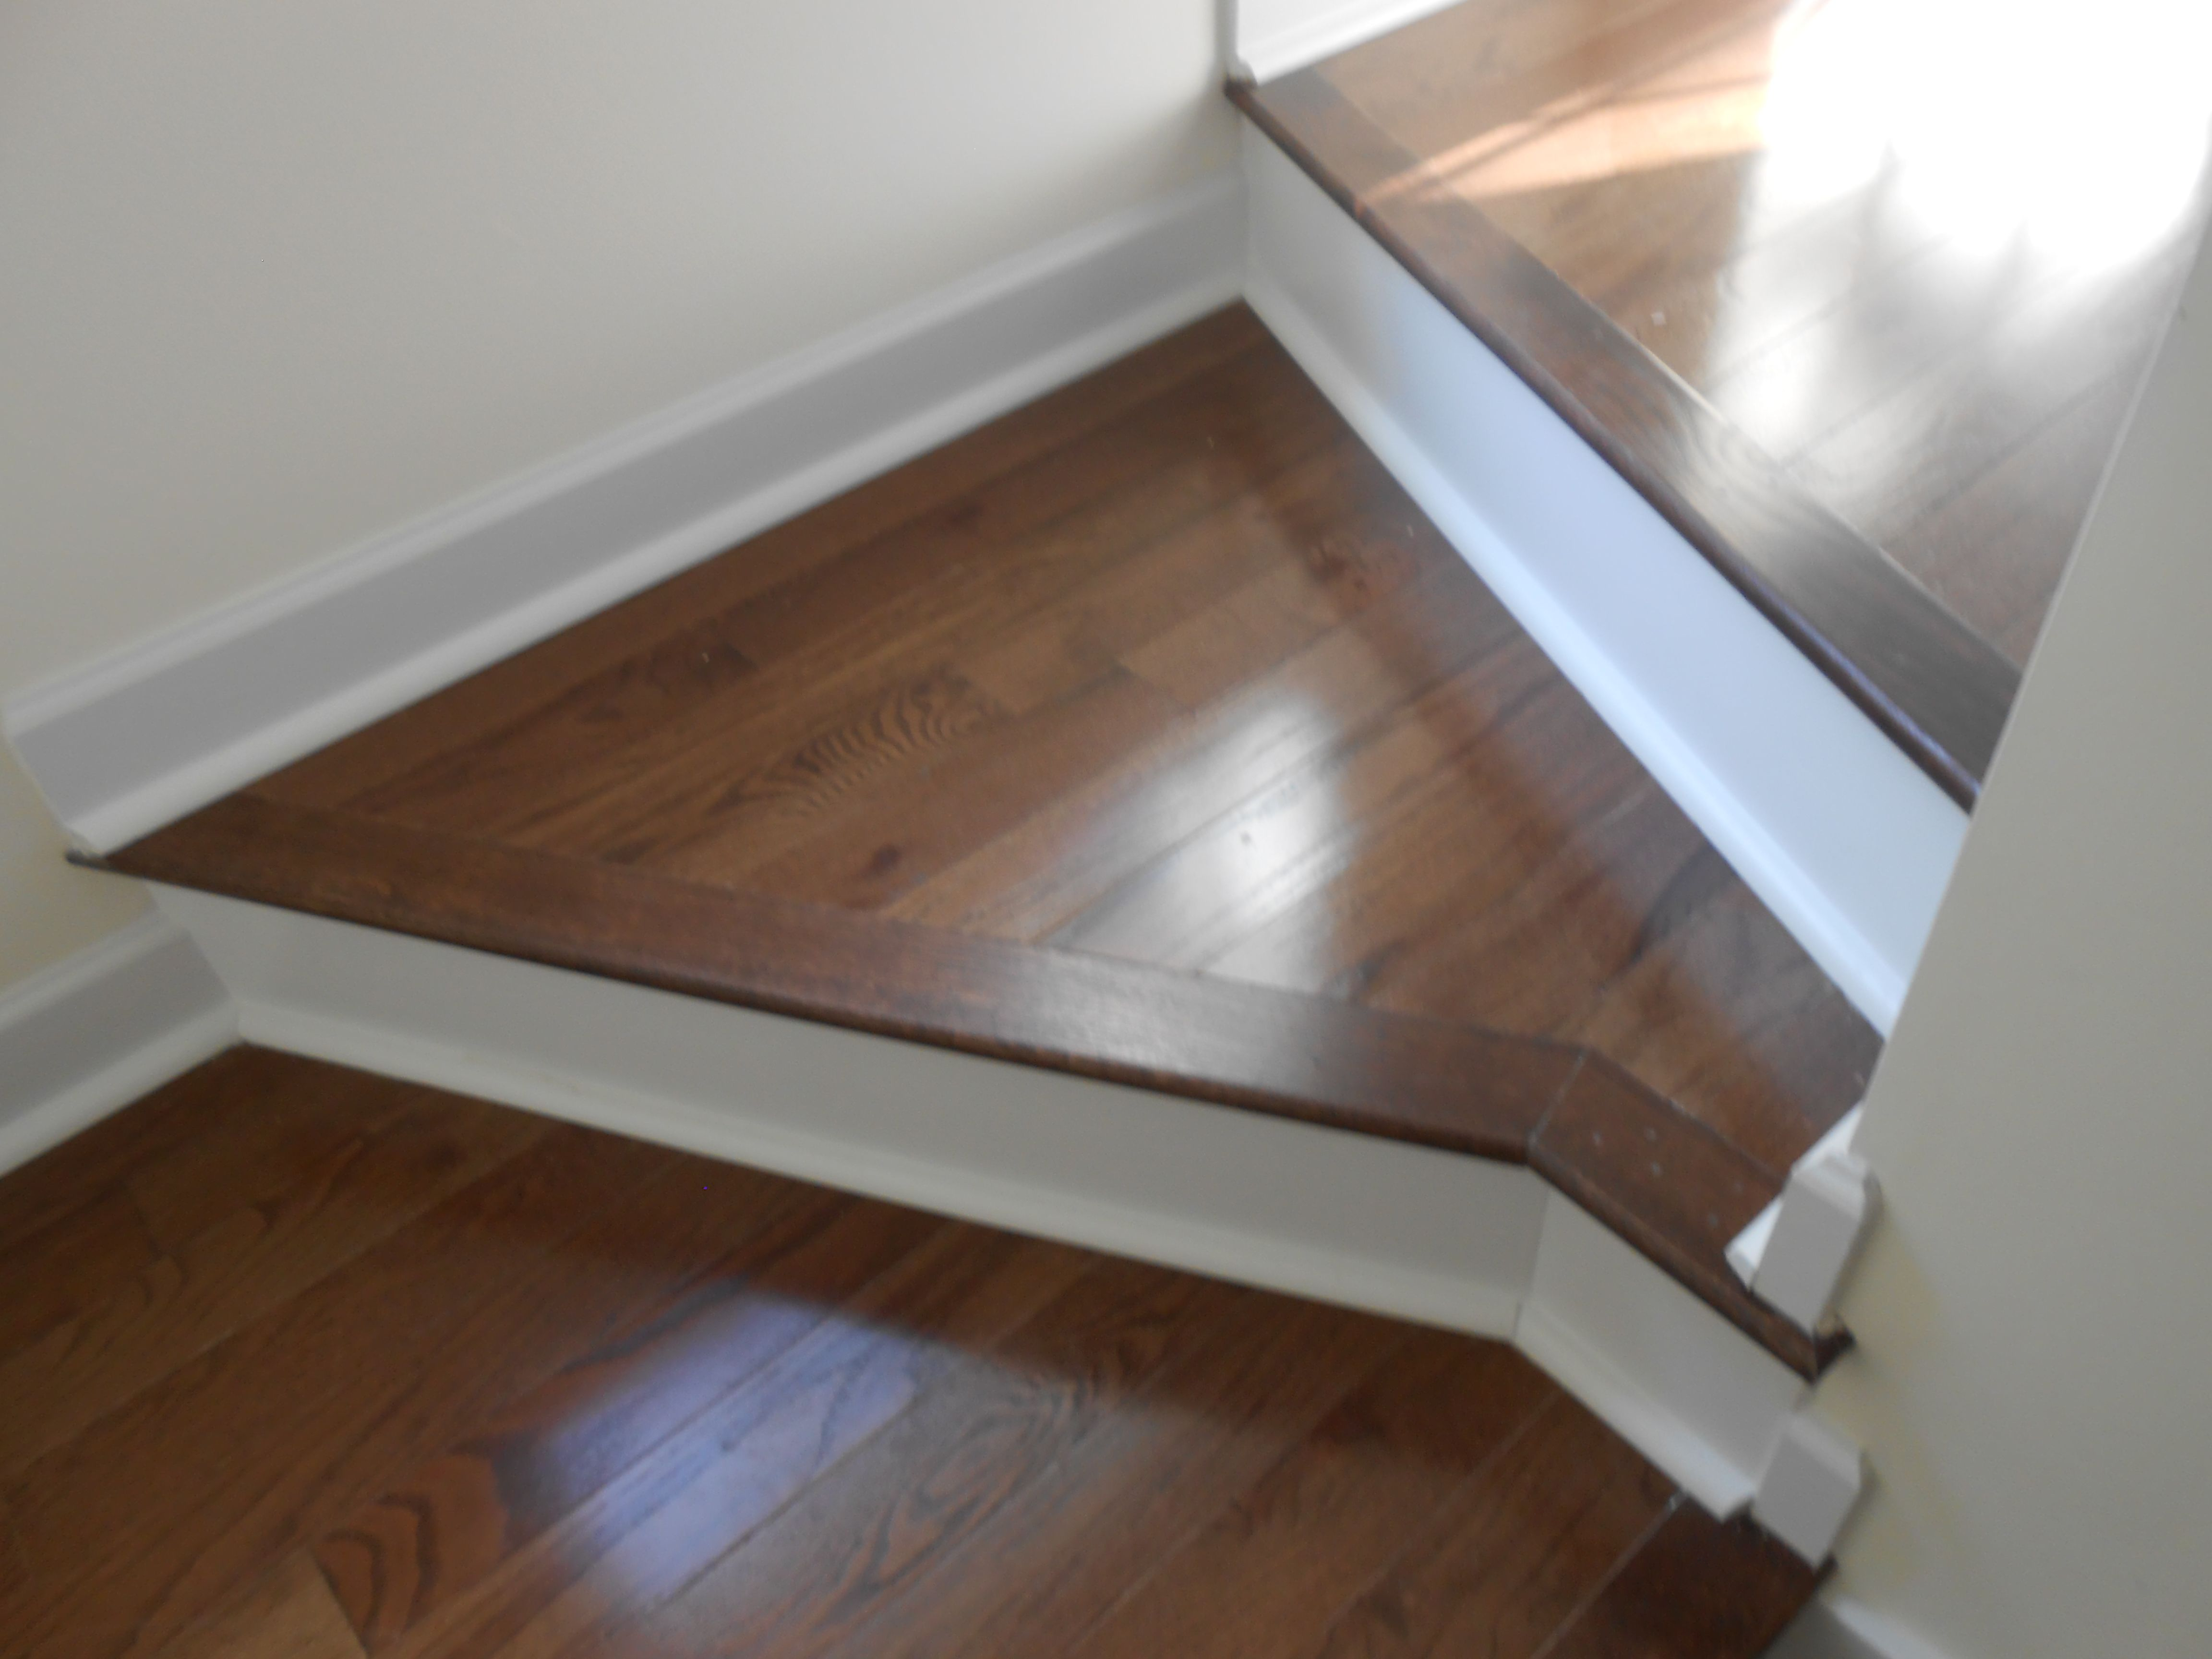 Hardwood floors on a stair landing interior photos for Hardwood floors and more